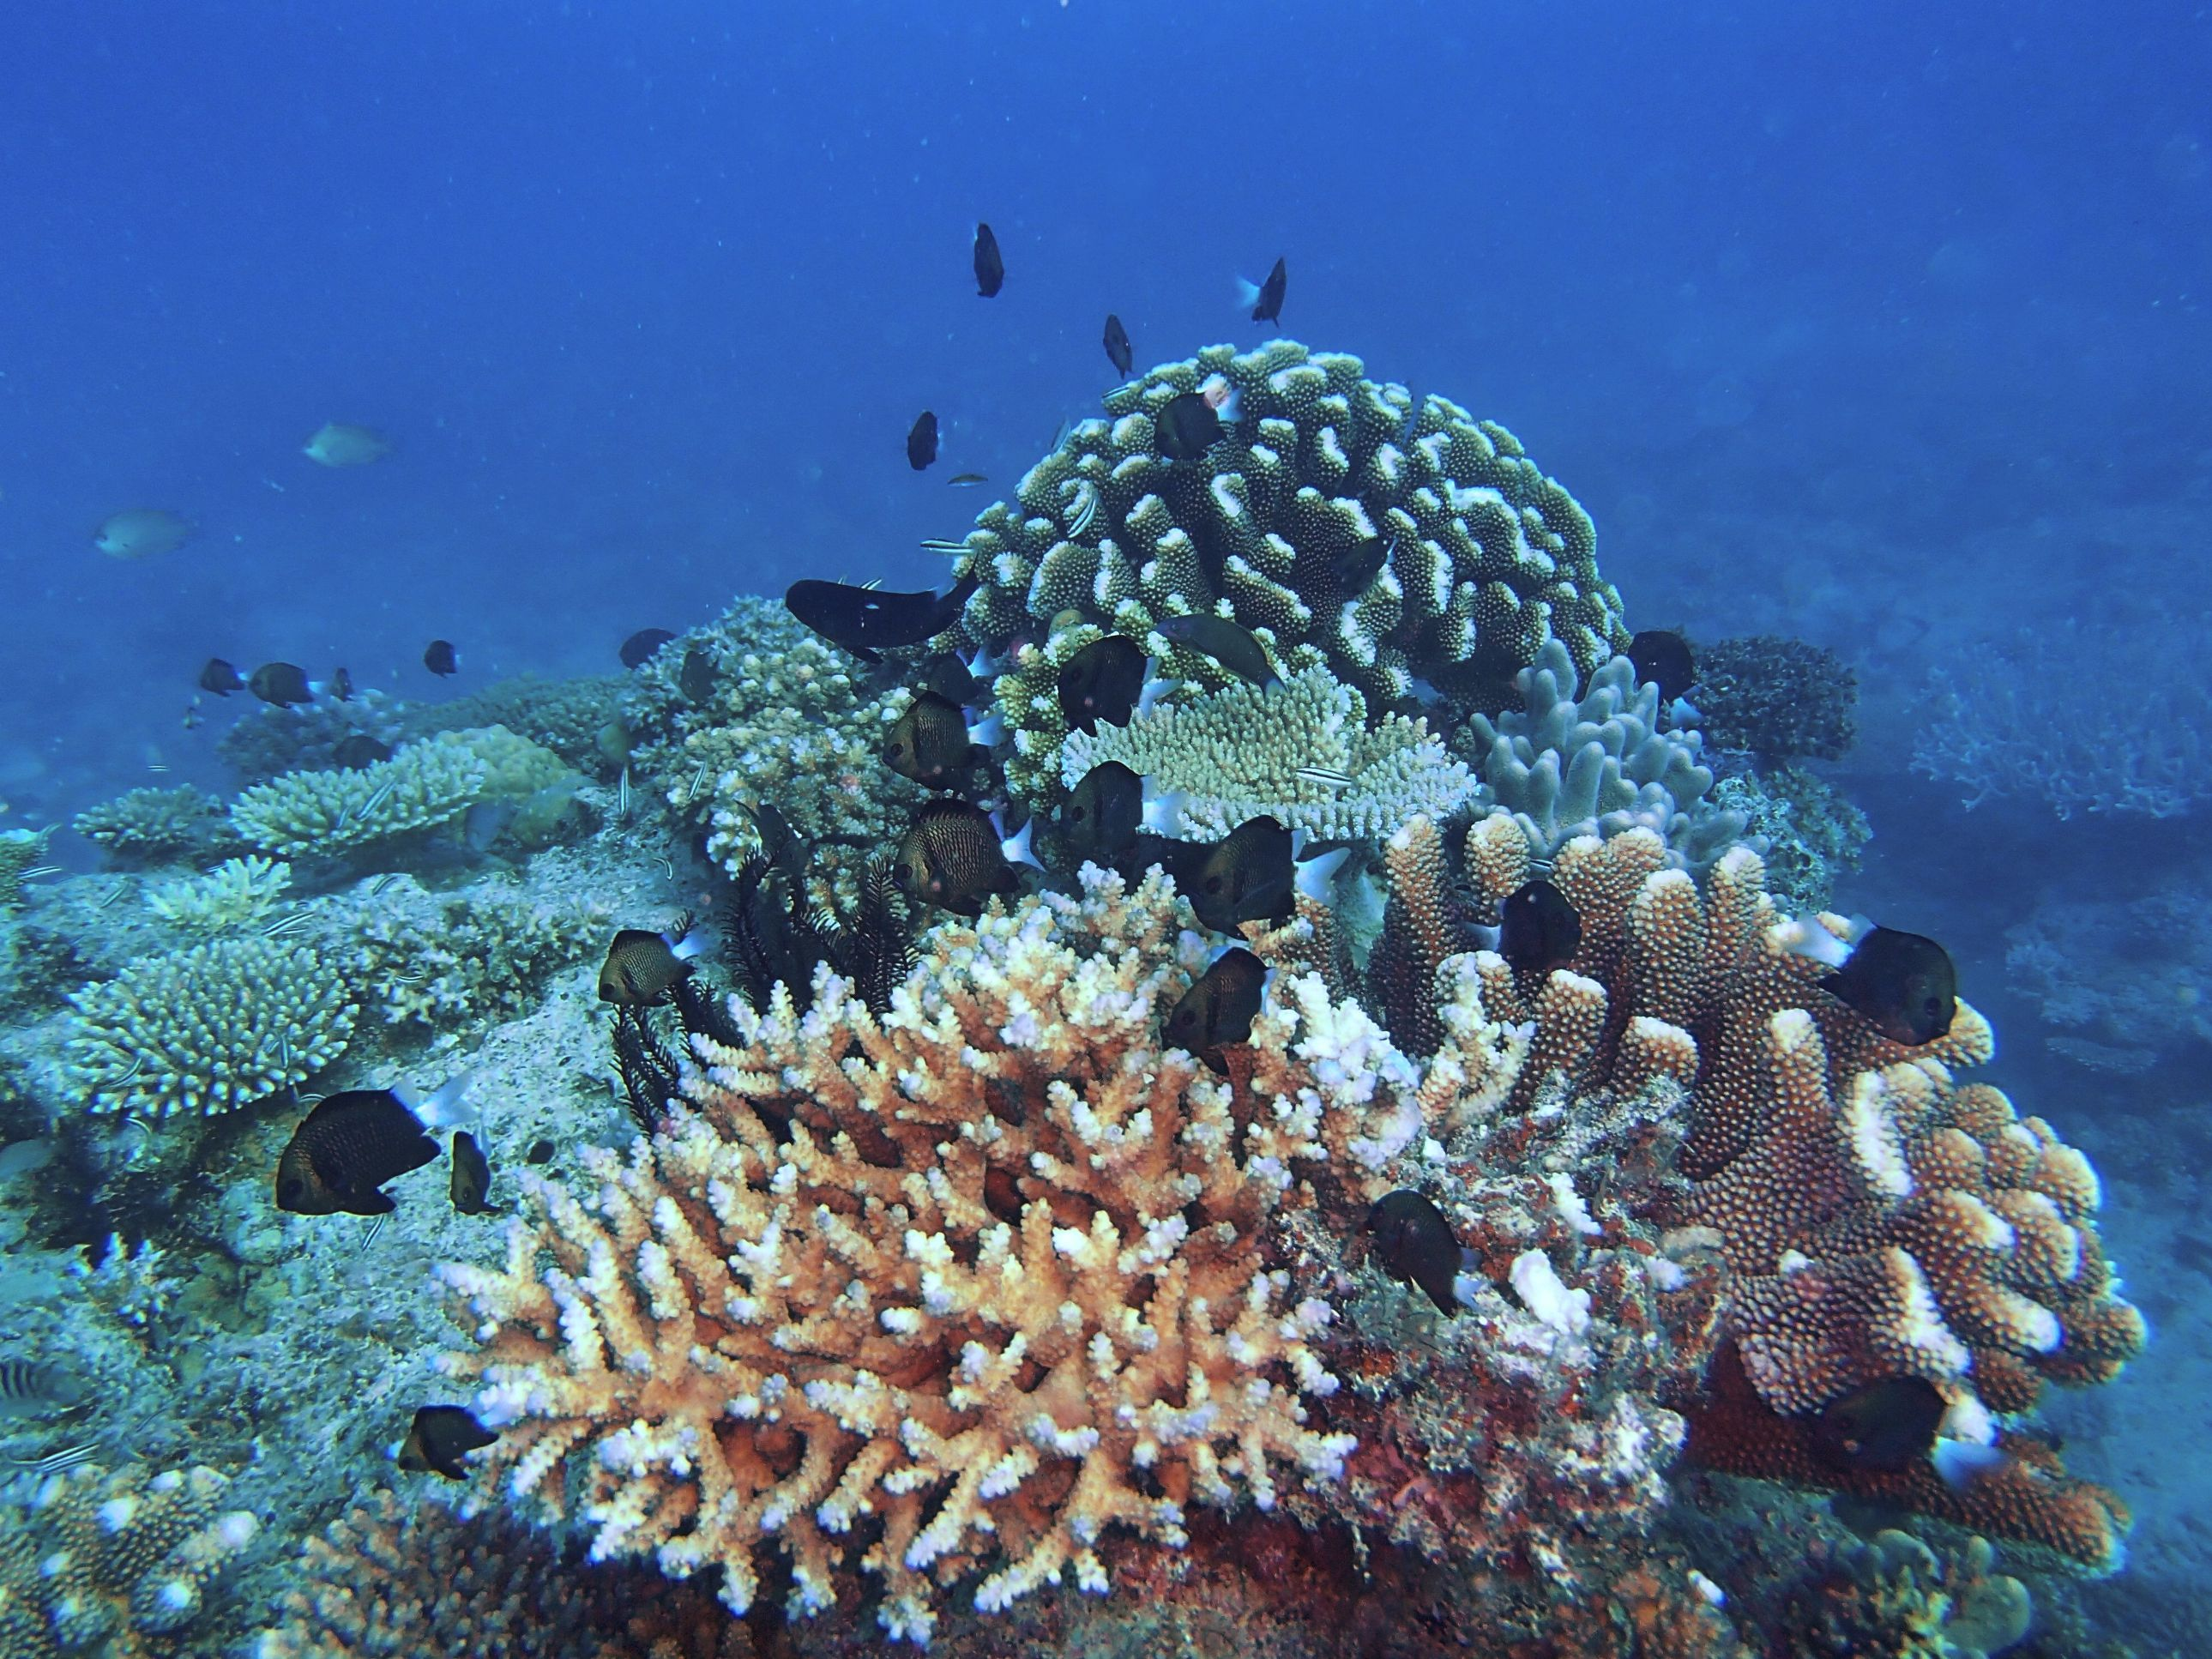 Win a 2 week conservation trip to Fiji